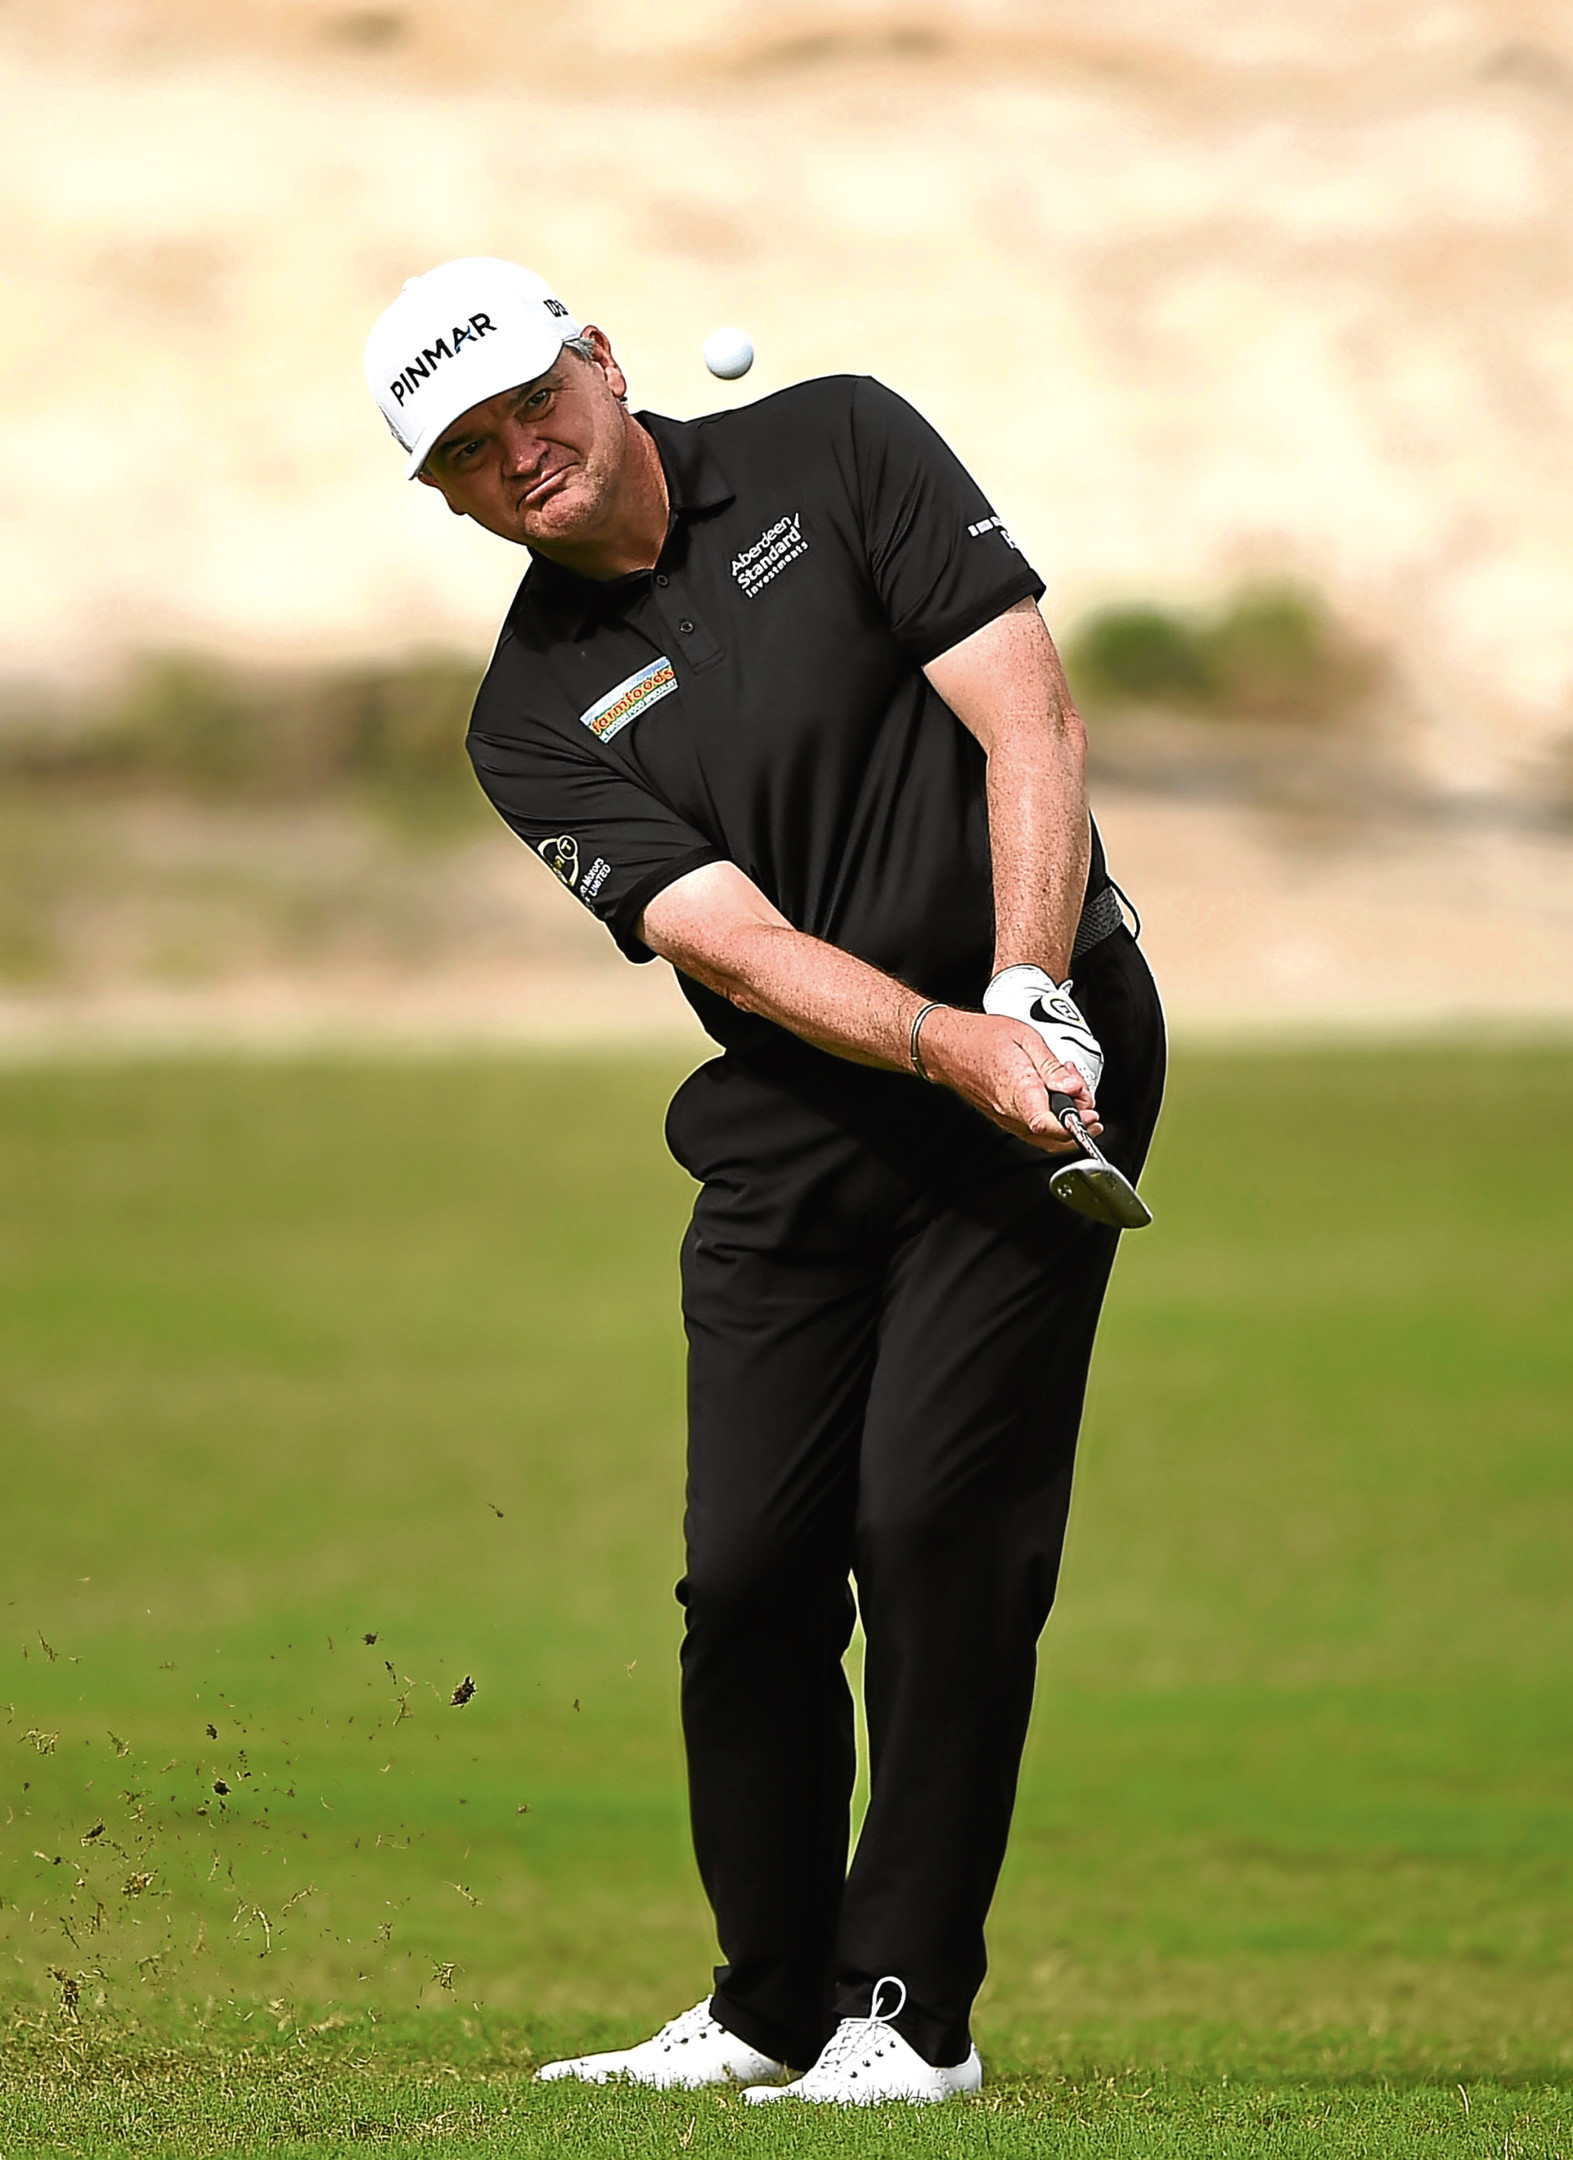 Paul Lawrie takes a shot from the 16th fairway prior to the Commercial Bank Qatar Masters at Doha Golf Club